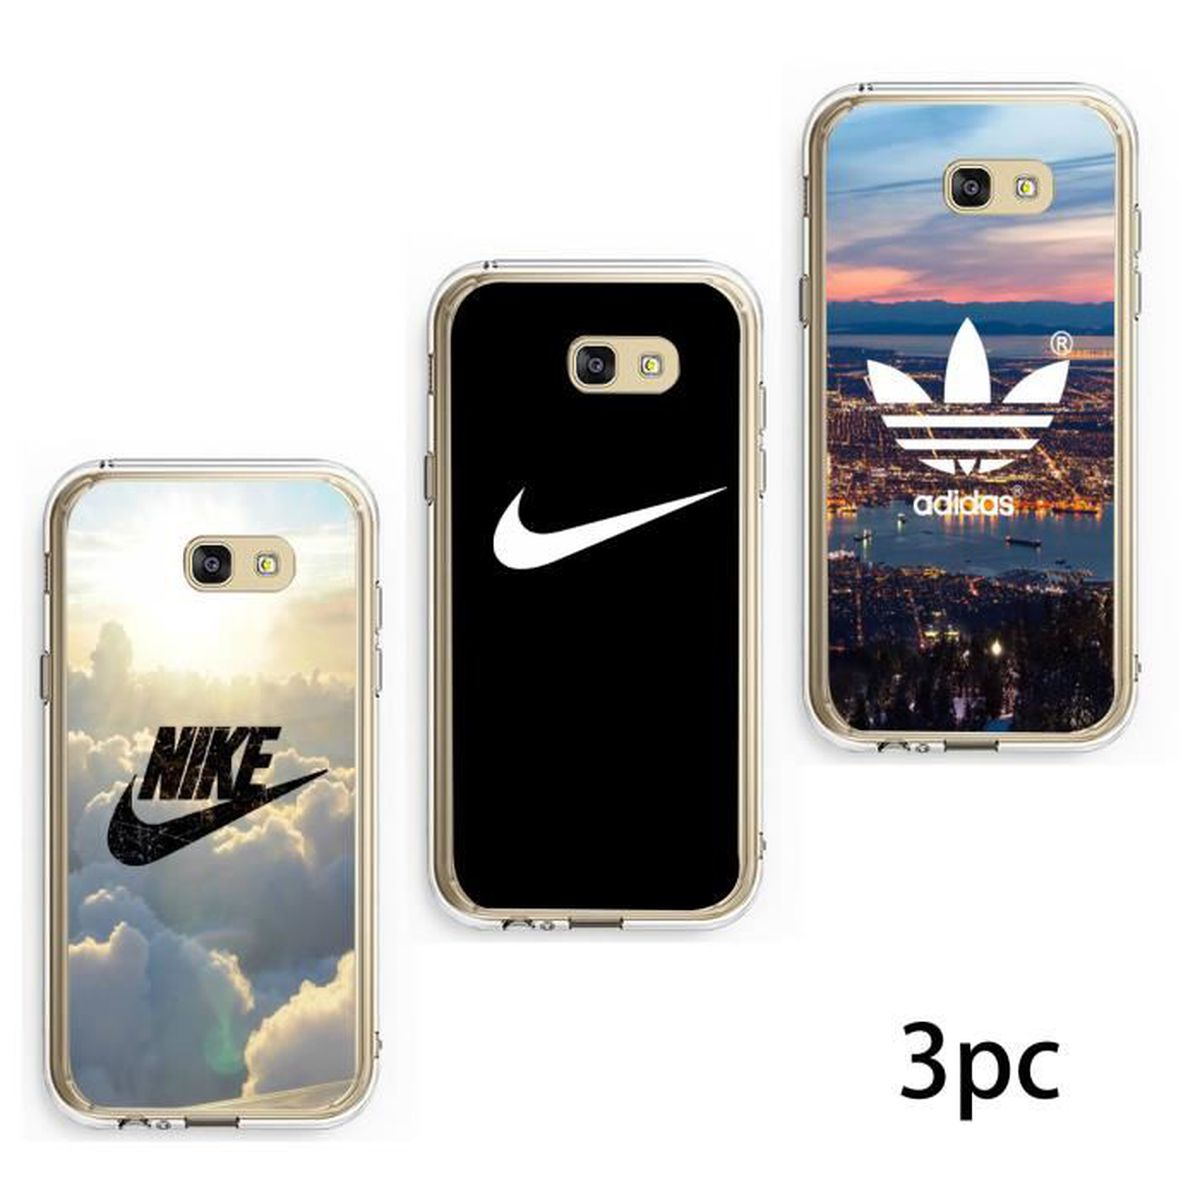 coque samsung a3 nike achat vente pas cher. Black Bedroom Furniture Sets. Home Design Ideas